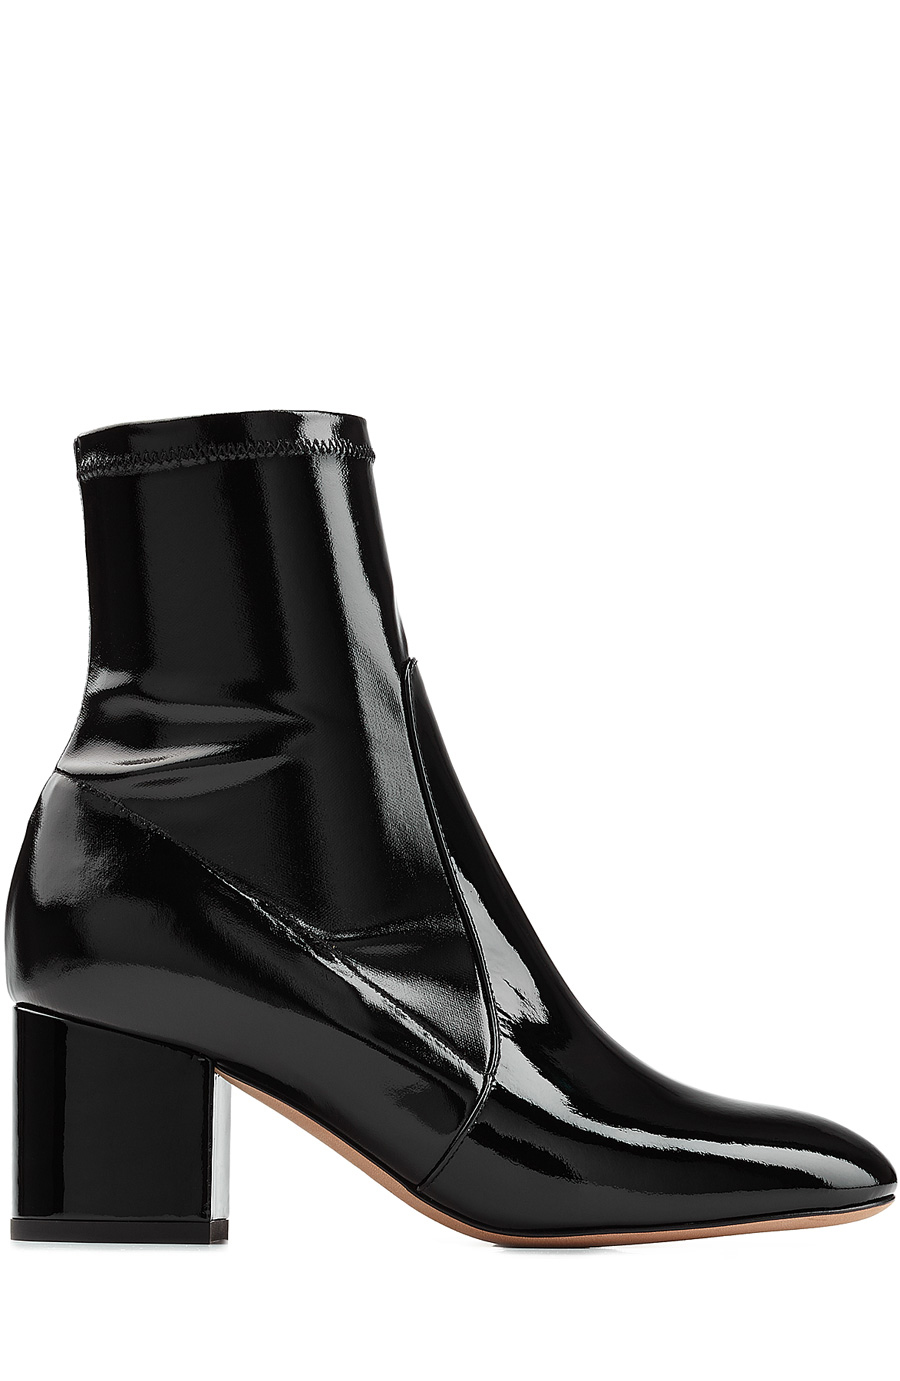 4f30a931109 Valentino Patent Leather Ankle Boots In Nero | ModeSens